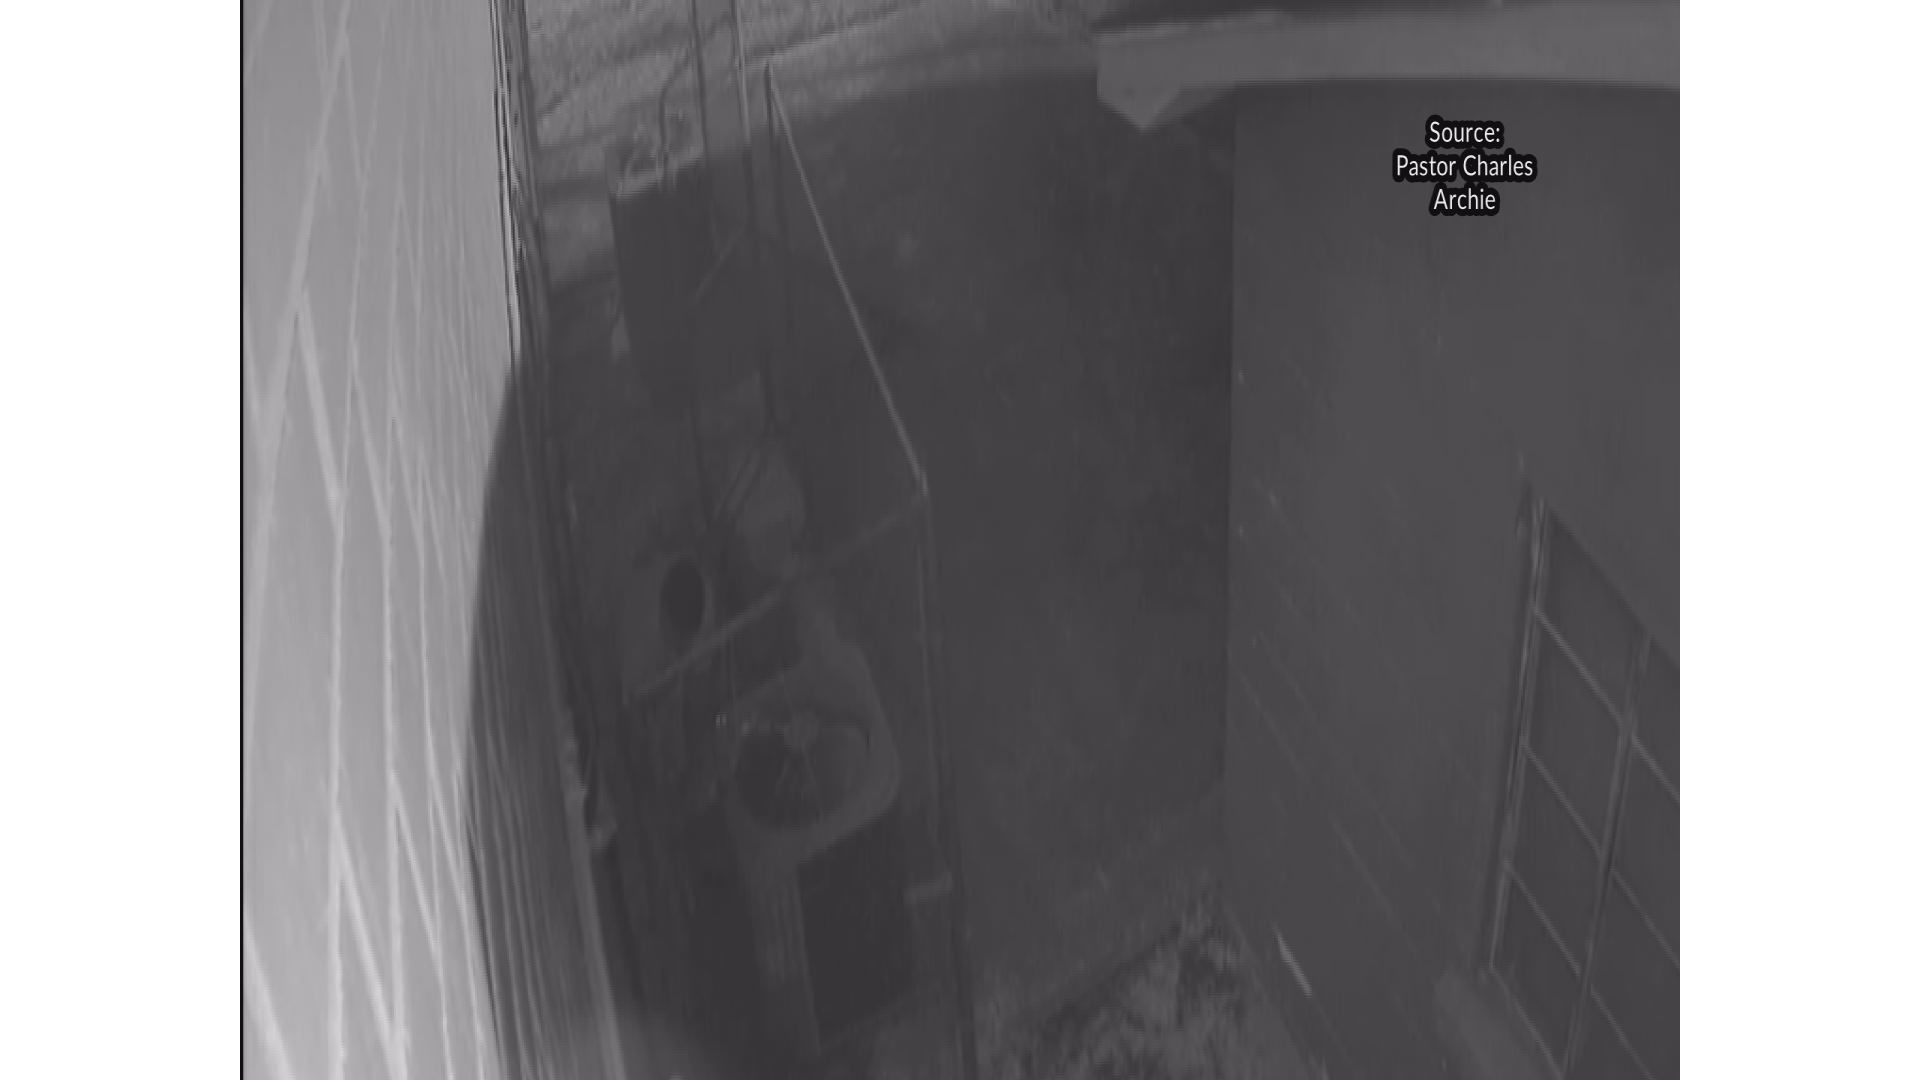 Security_video_from_Prichard_church_0_20180704084715